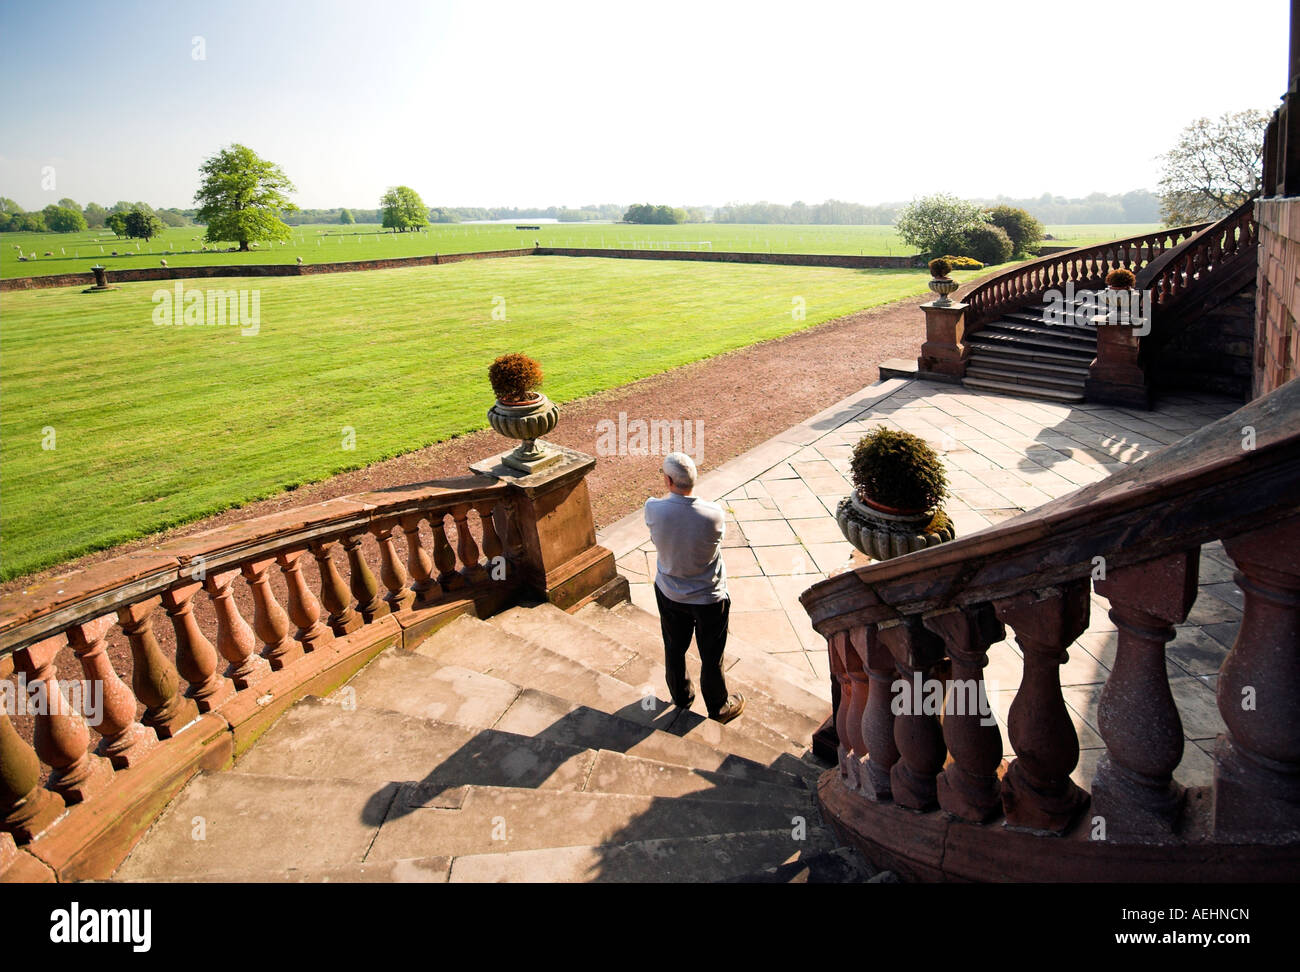 Man standing on the steps of Tabley House, Knutsford, Cheshire, UK Stock Photo